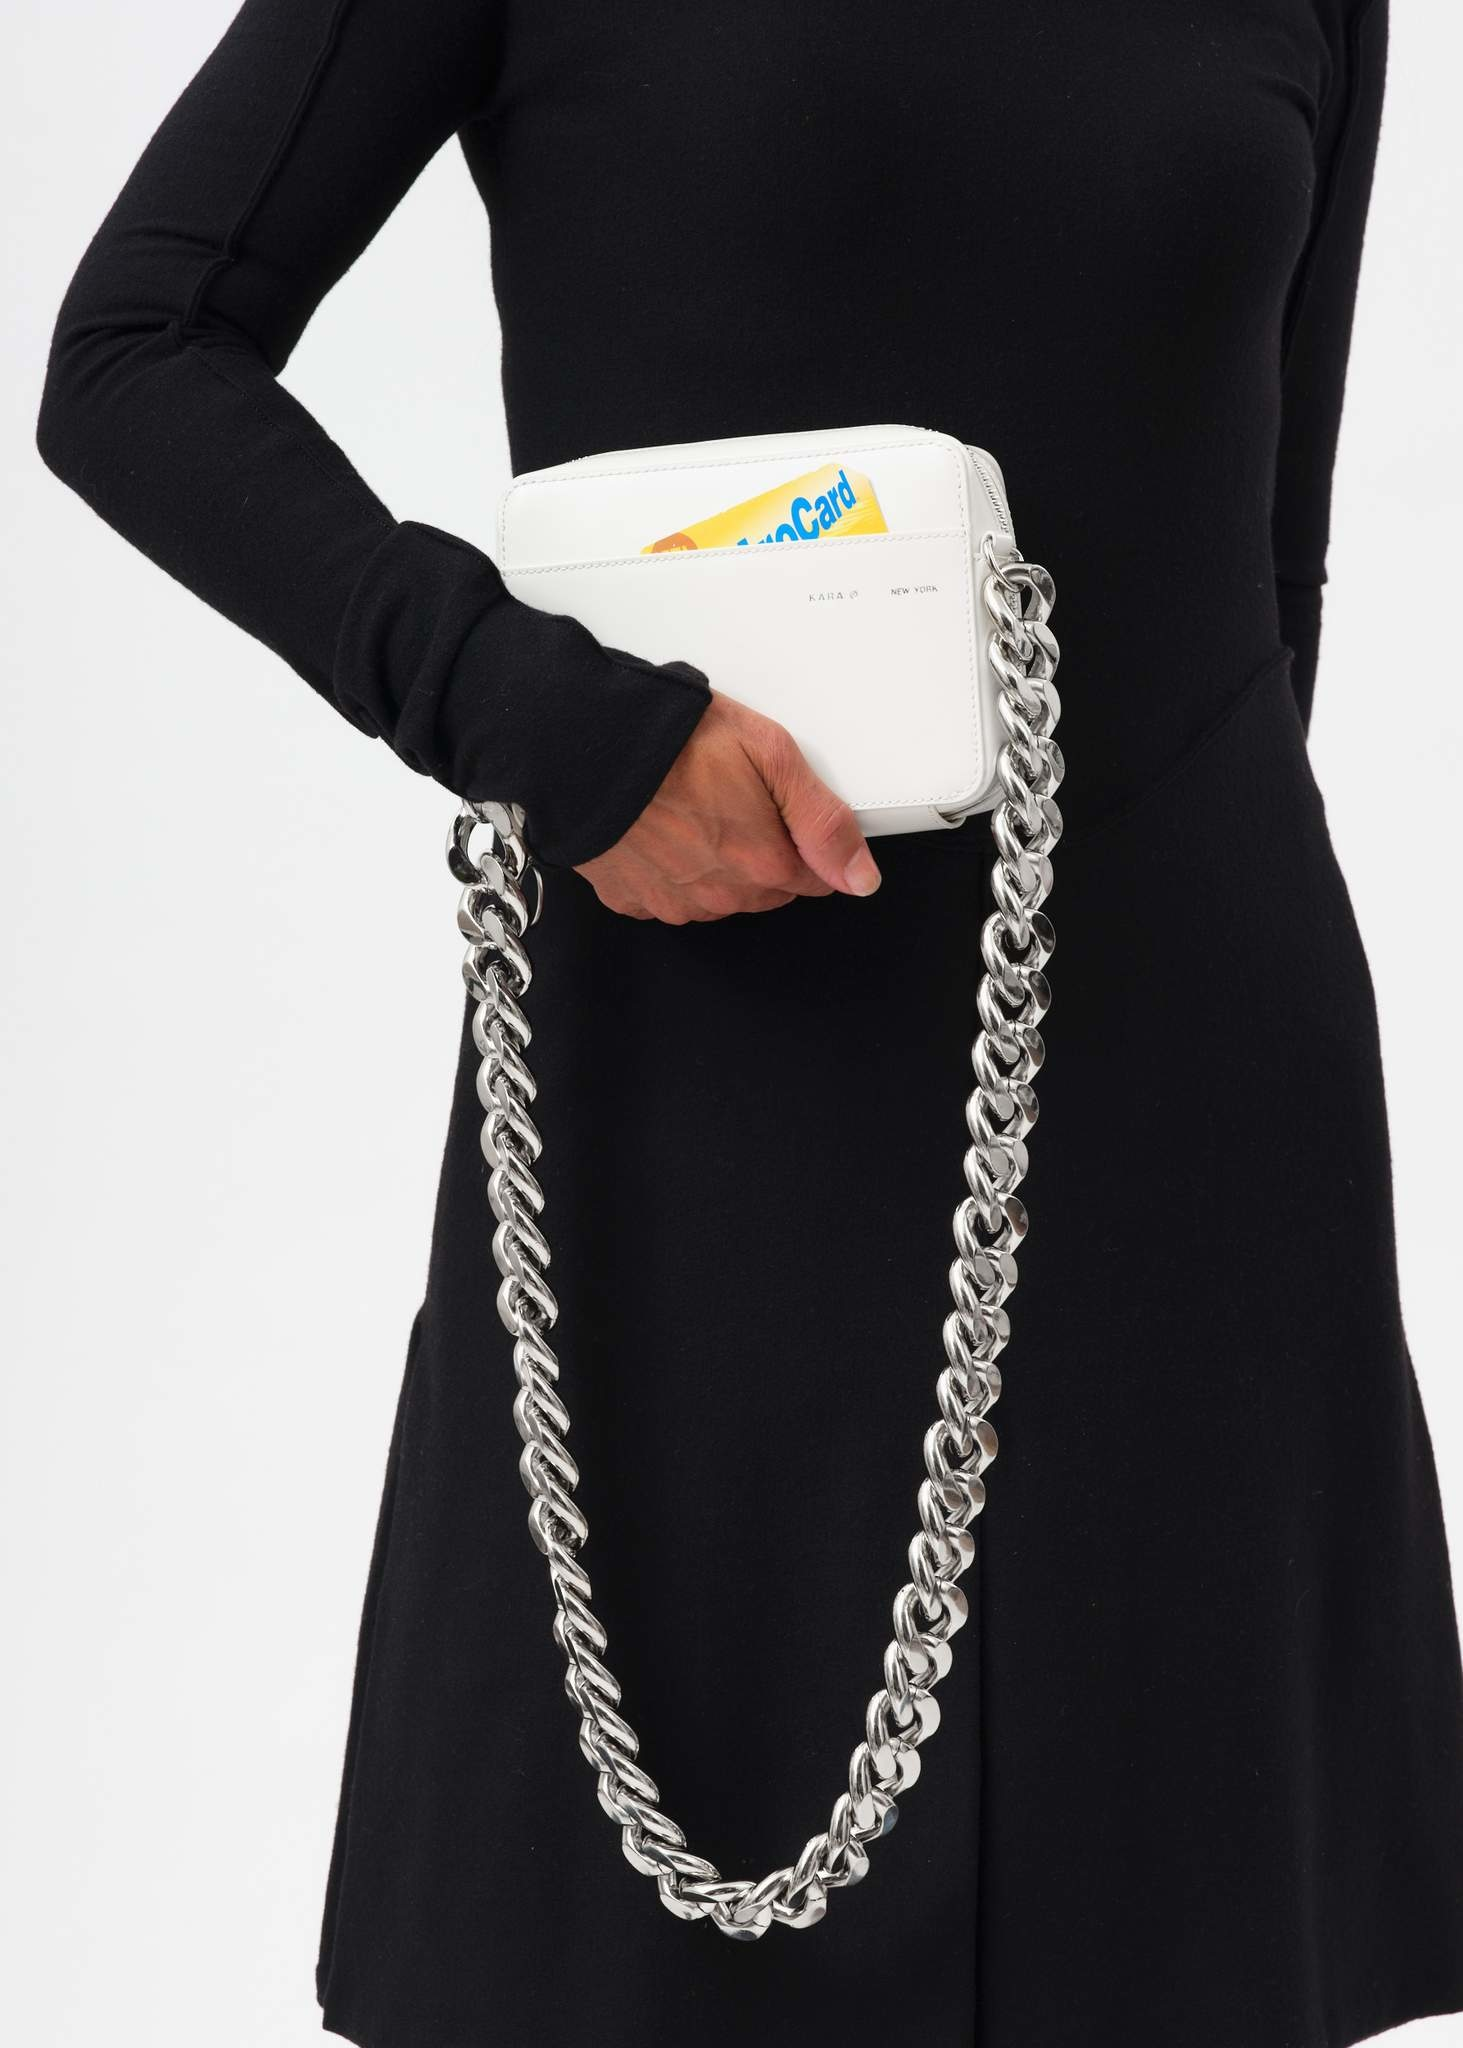 KARA Camera bag with bike chain in White